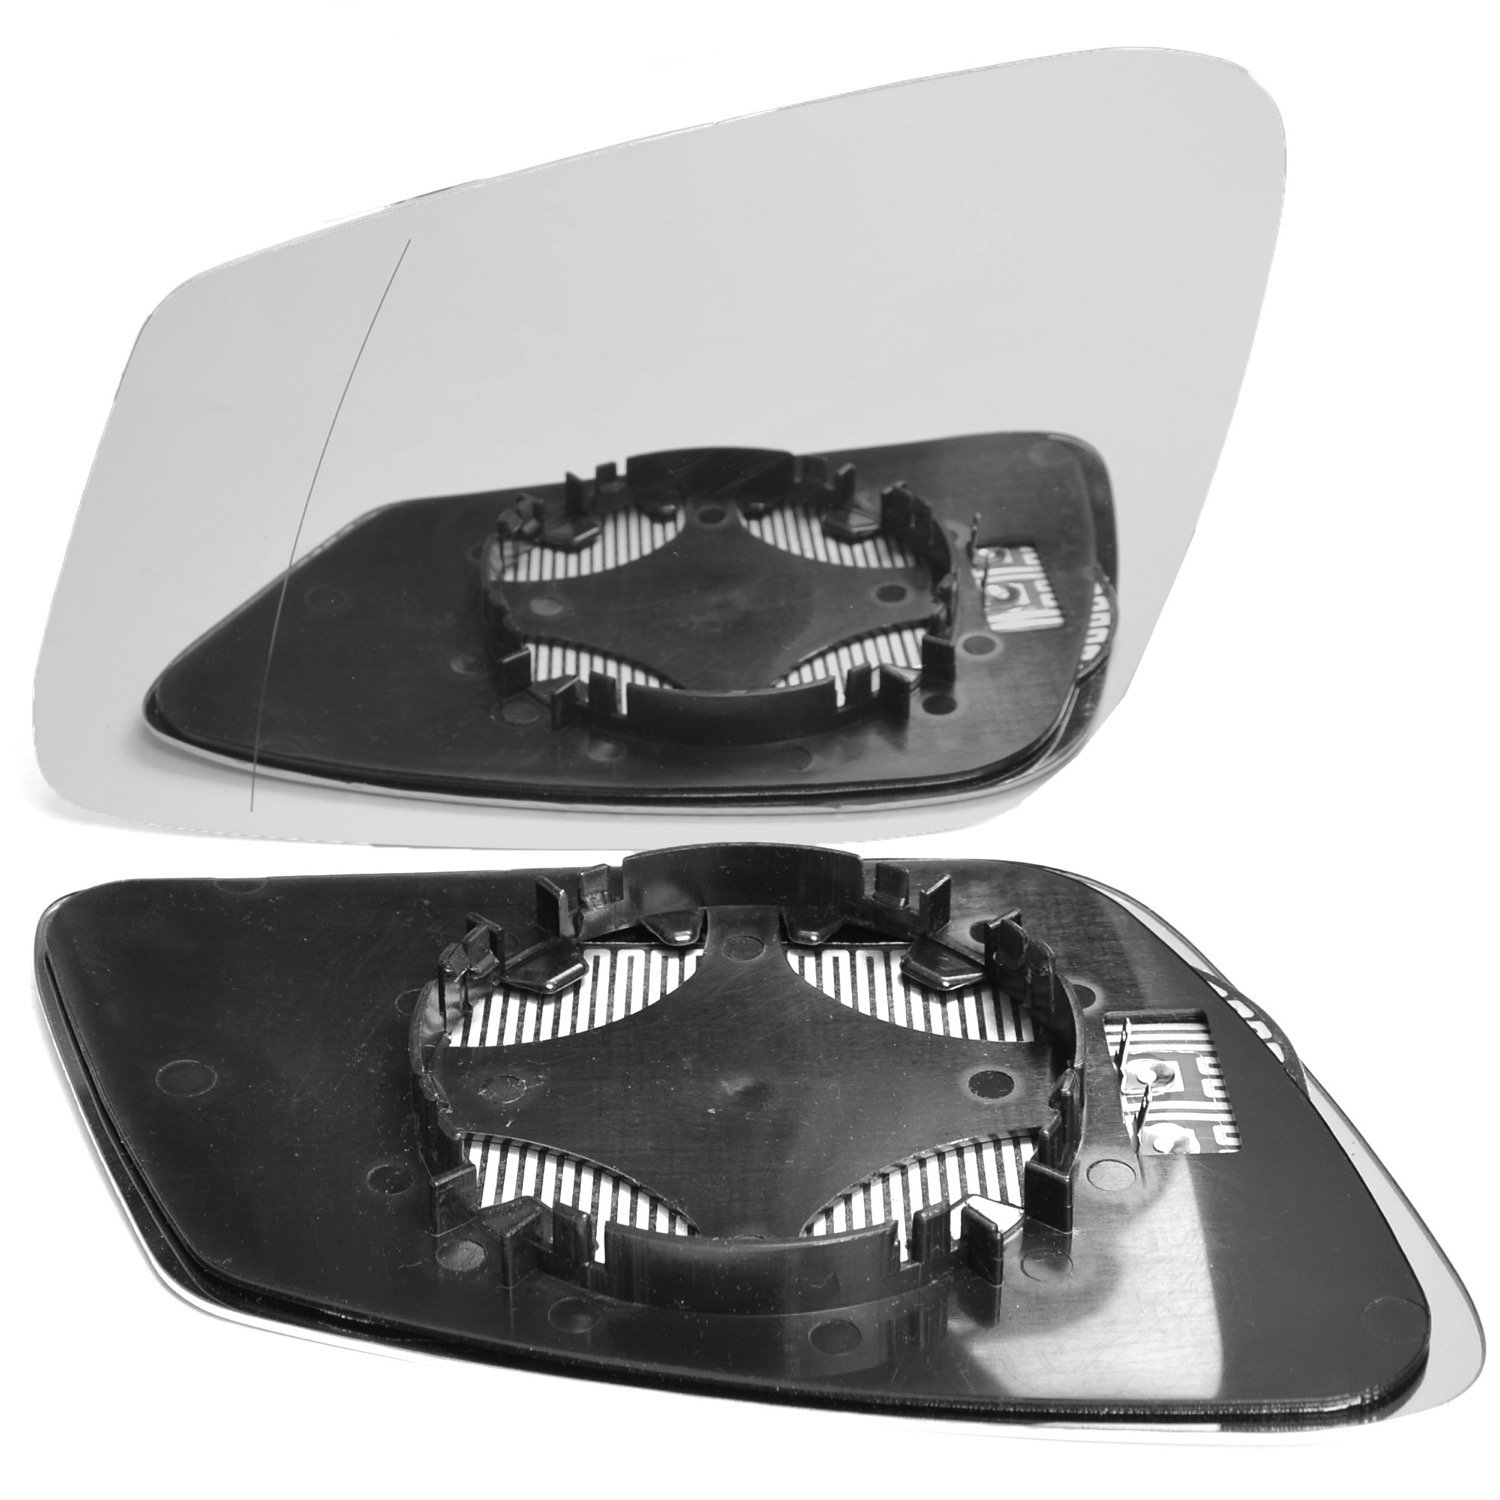 Left passegner side wing door clip on mirror glass Wide Angle Heated